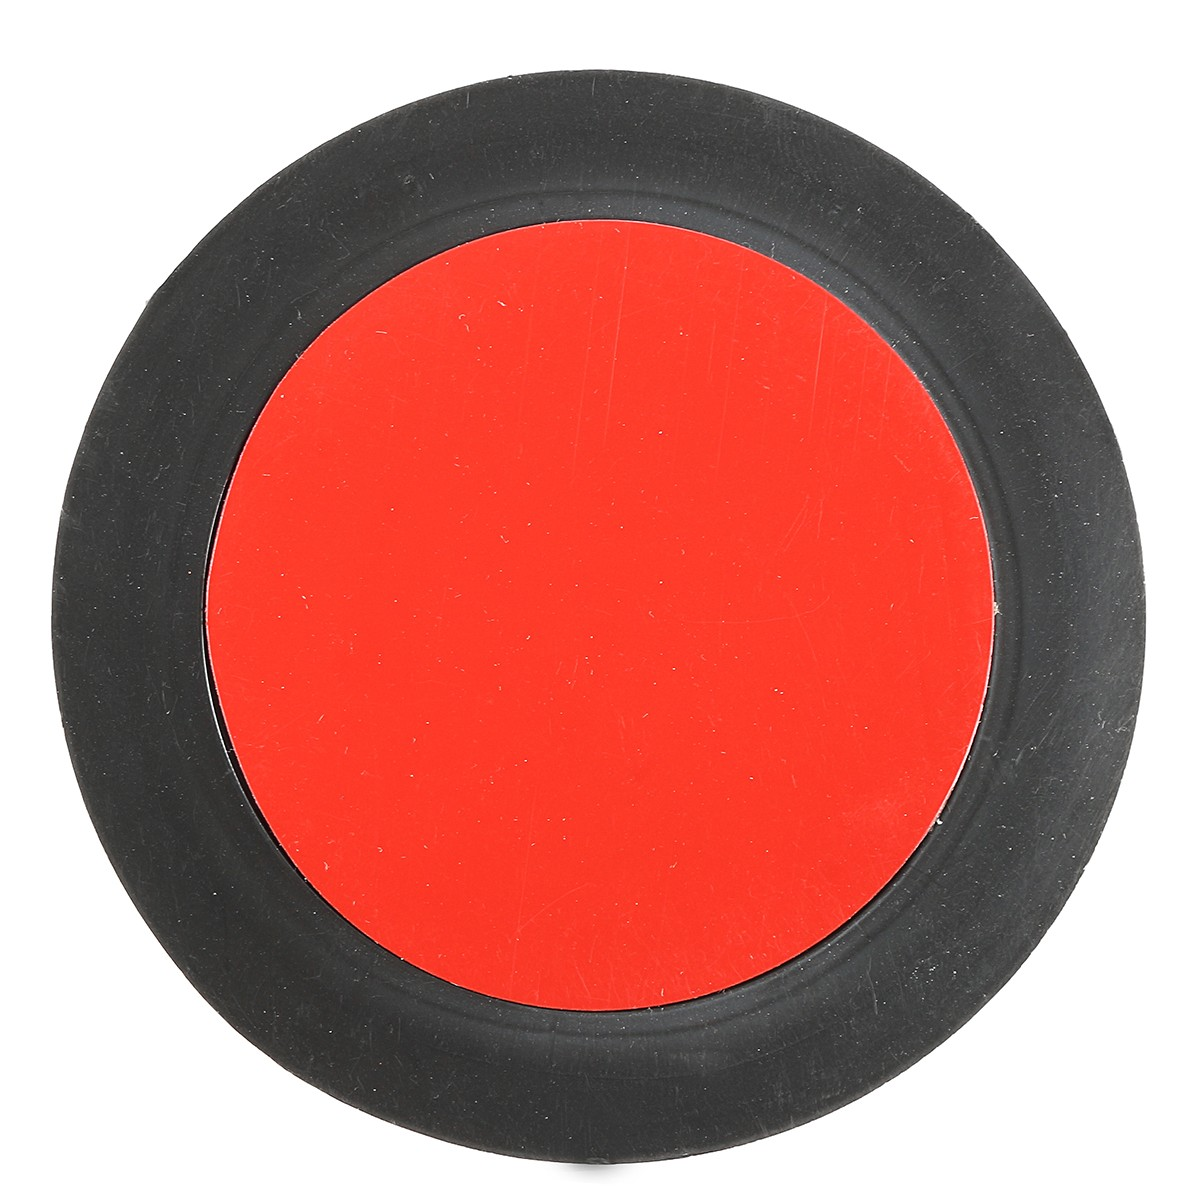 80mm Adhesive Sticky Sucker Dashboard Suction Cup Disc Disk Pad For Car GPS Phone Holder Mount